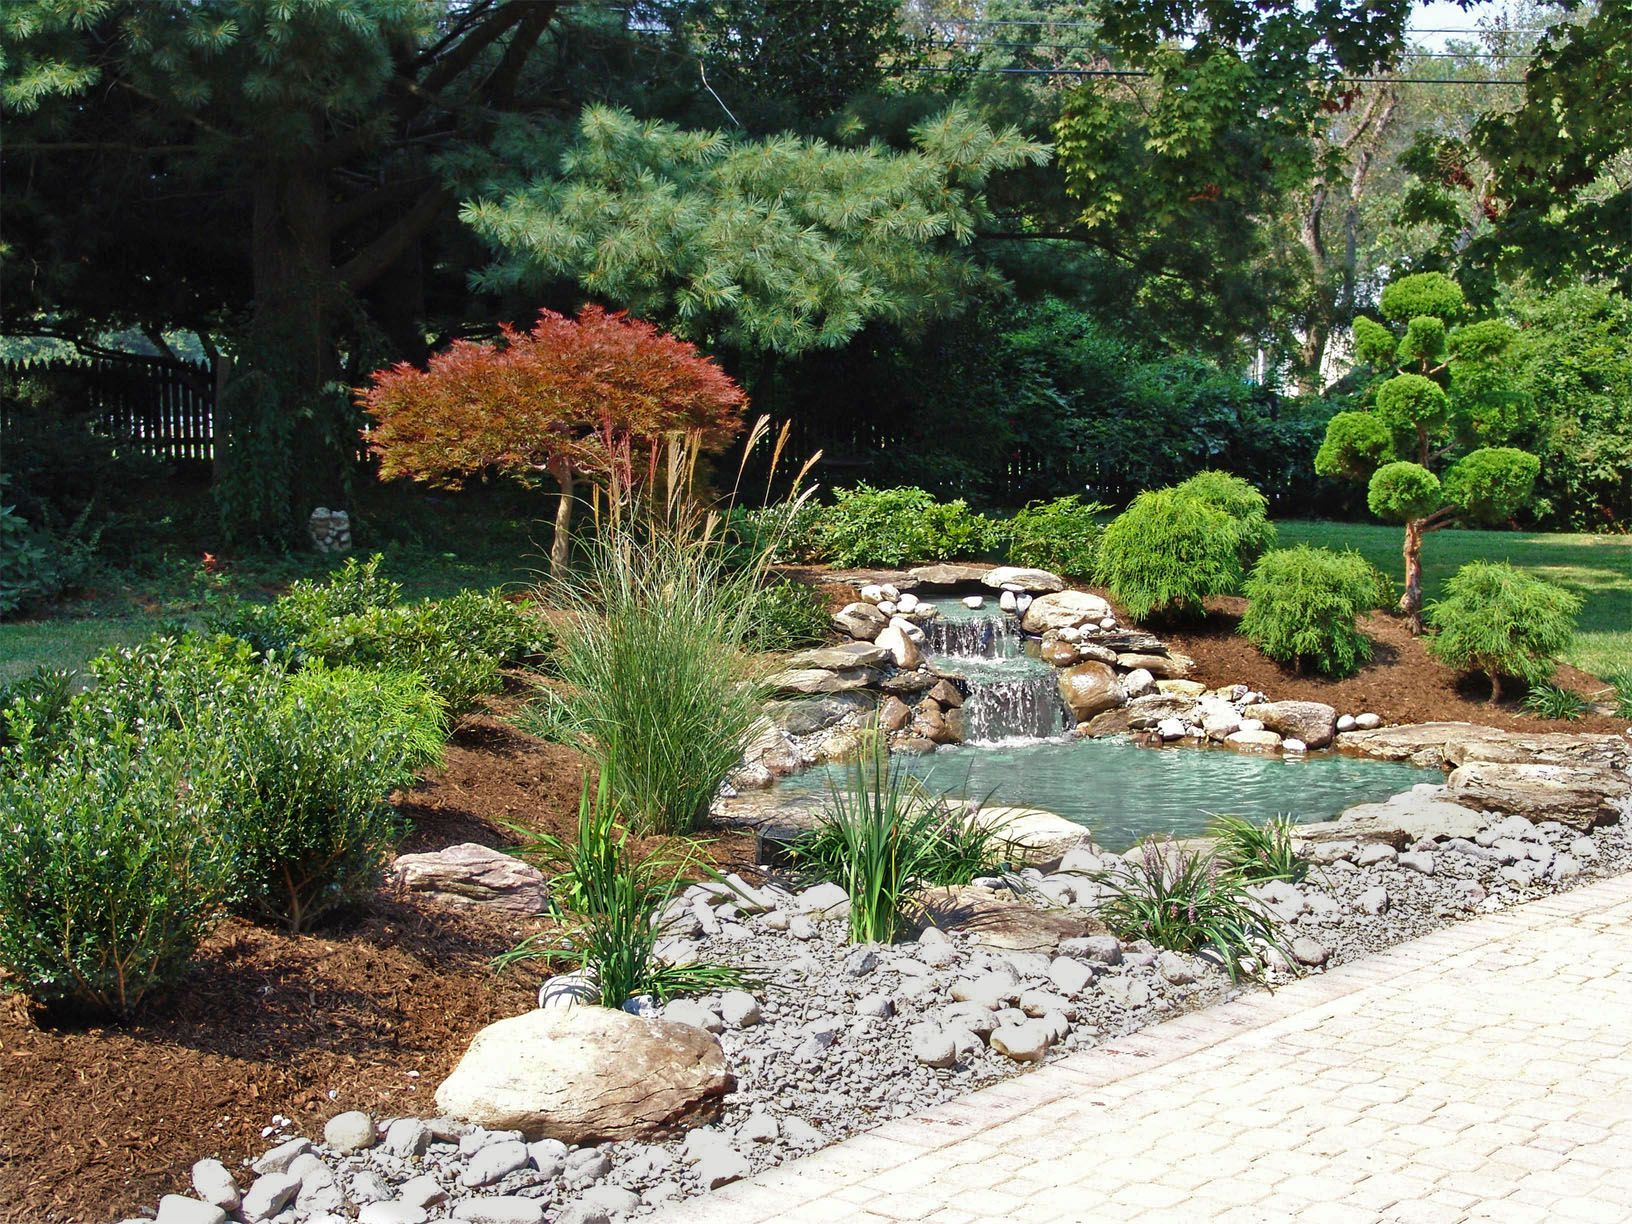 Japanese garden landscape design with waterfall and pond for Garden design with pond and waterfall